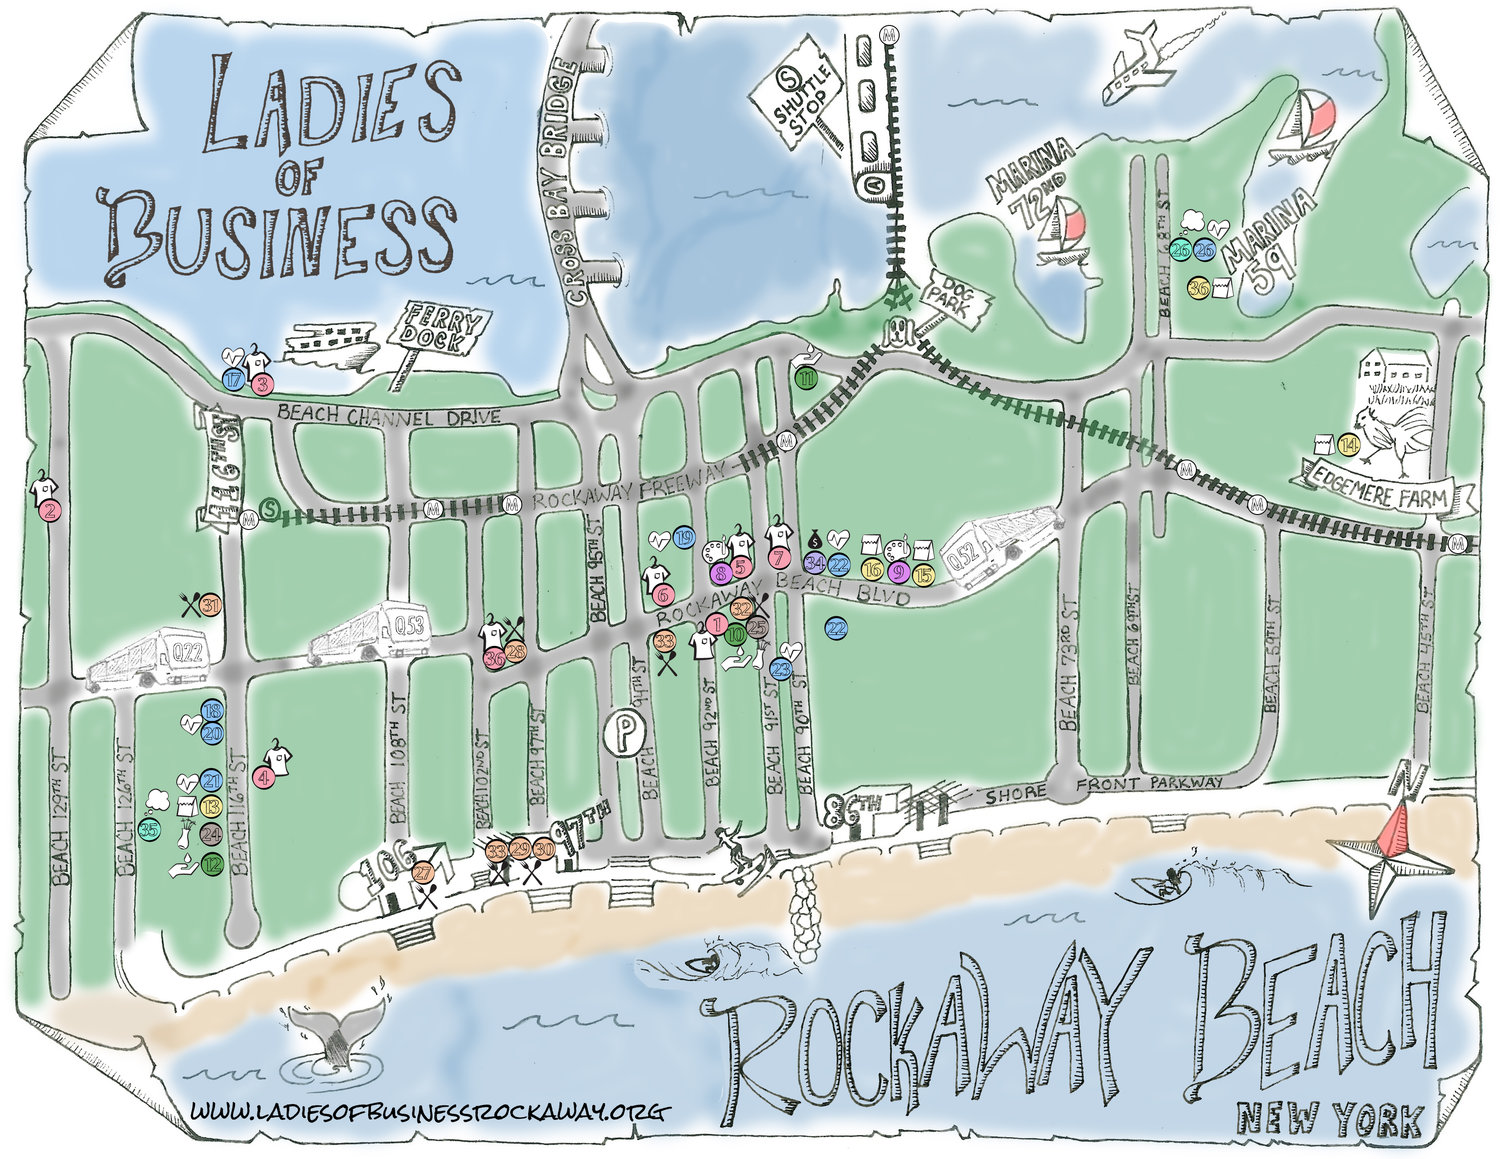 Ladies of Business Rockaway